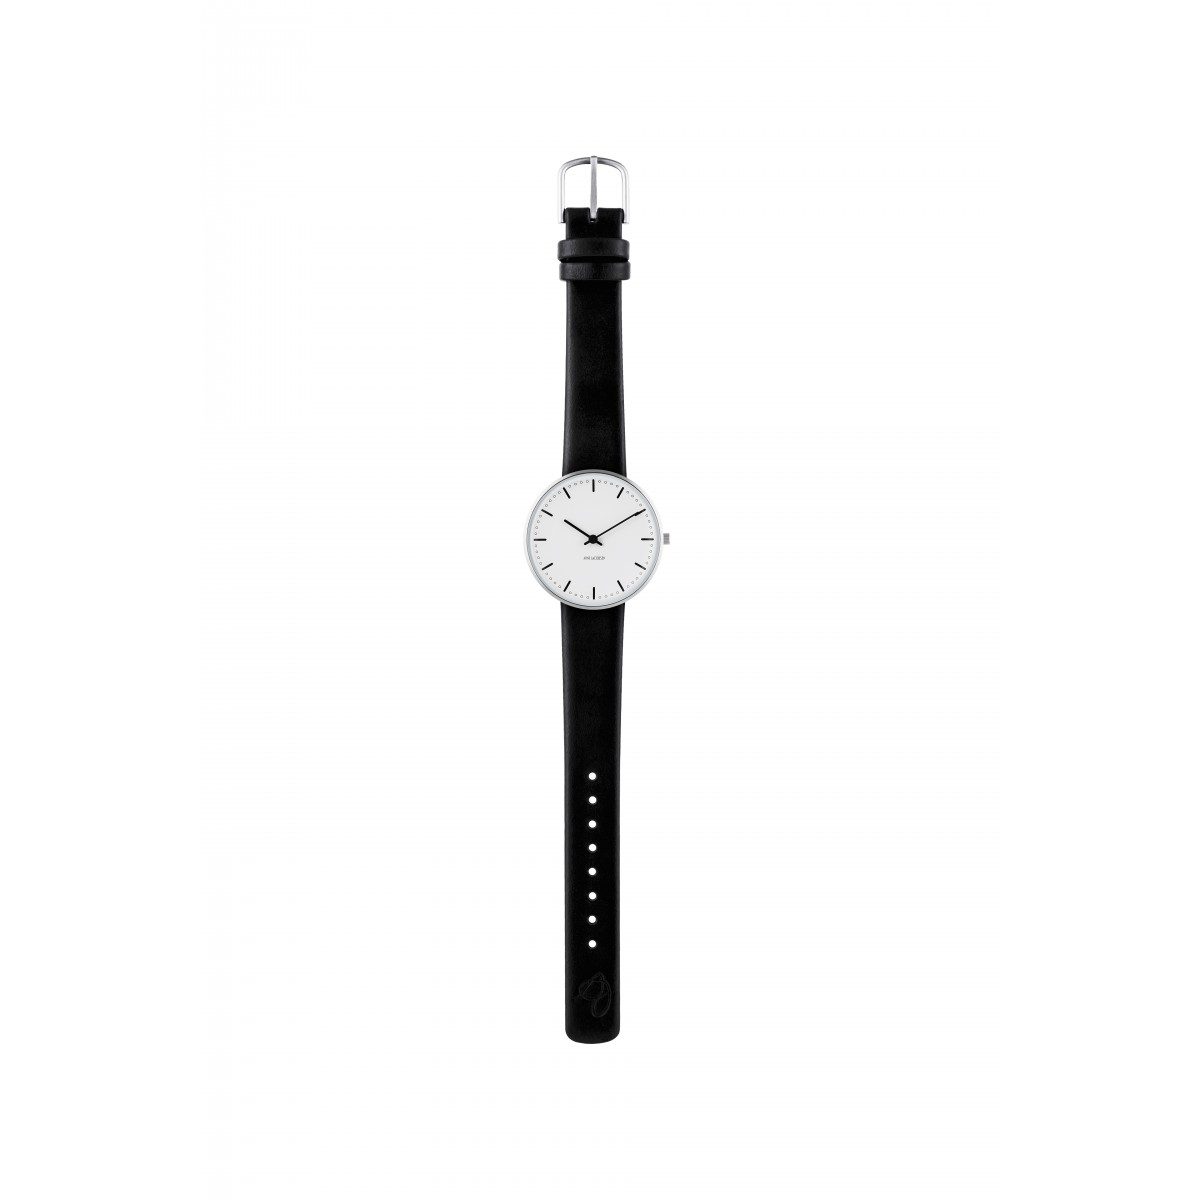 Arne Jacobsen armbåndsur CITY HALL 34, 40 and 46 MM sort rem/hvid skive-30